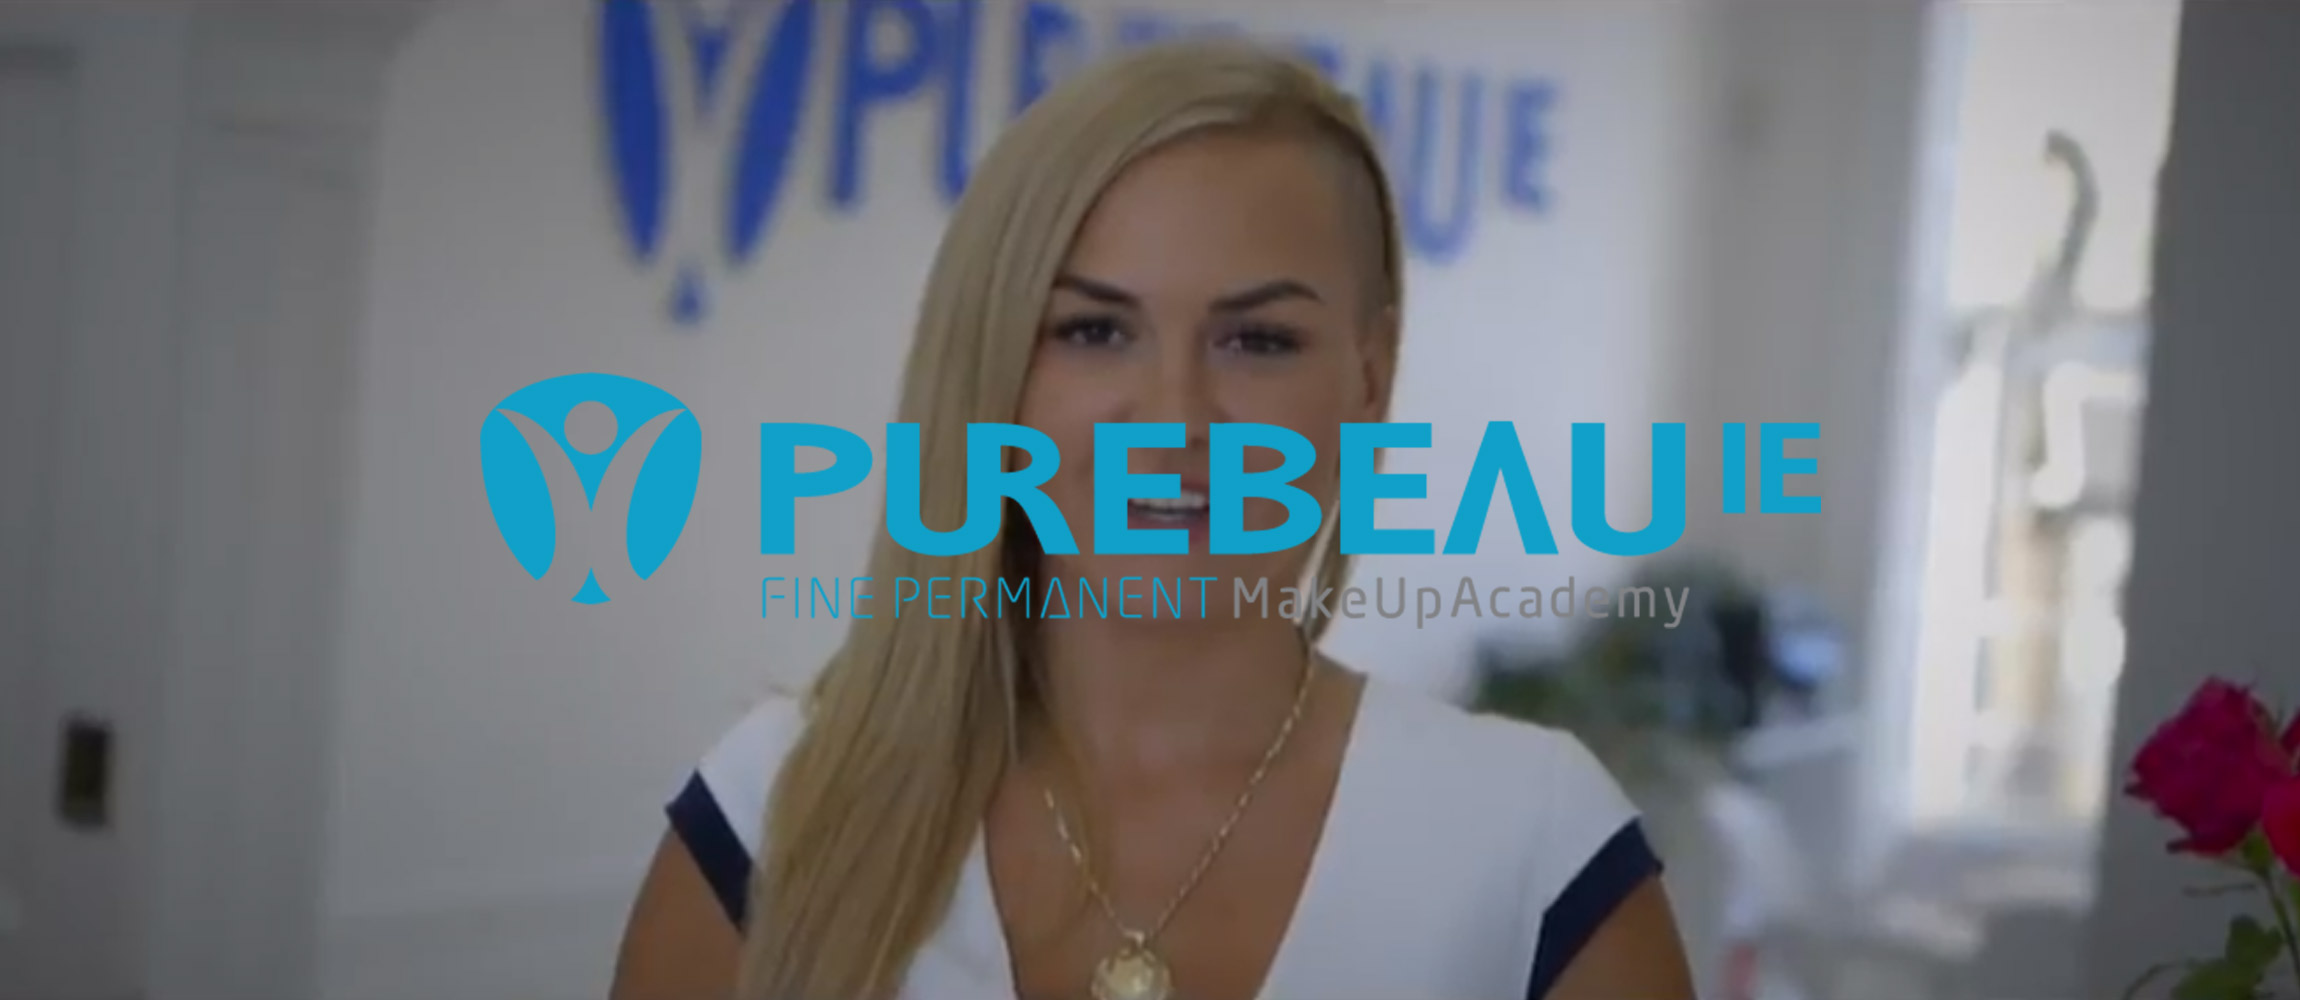 Purebeau Fibroblast Treatment – PureBeau